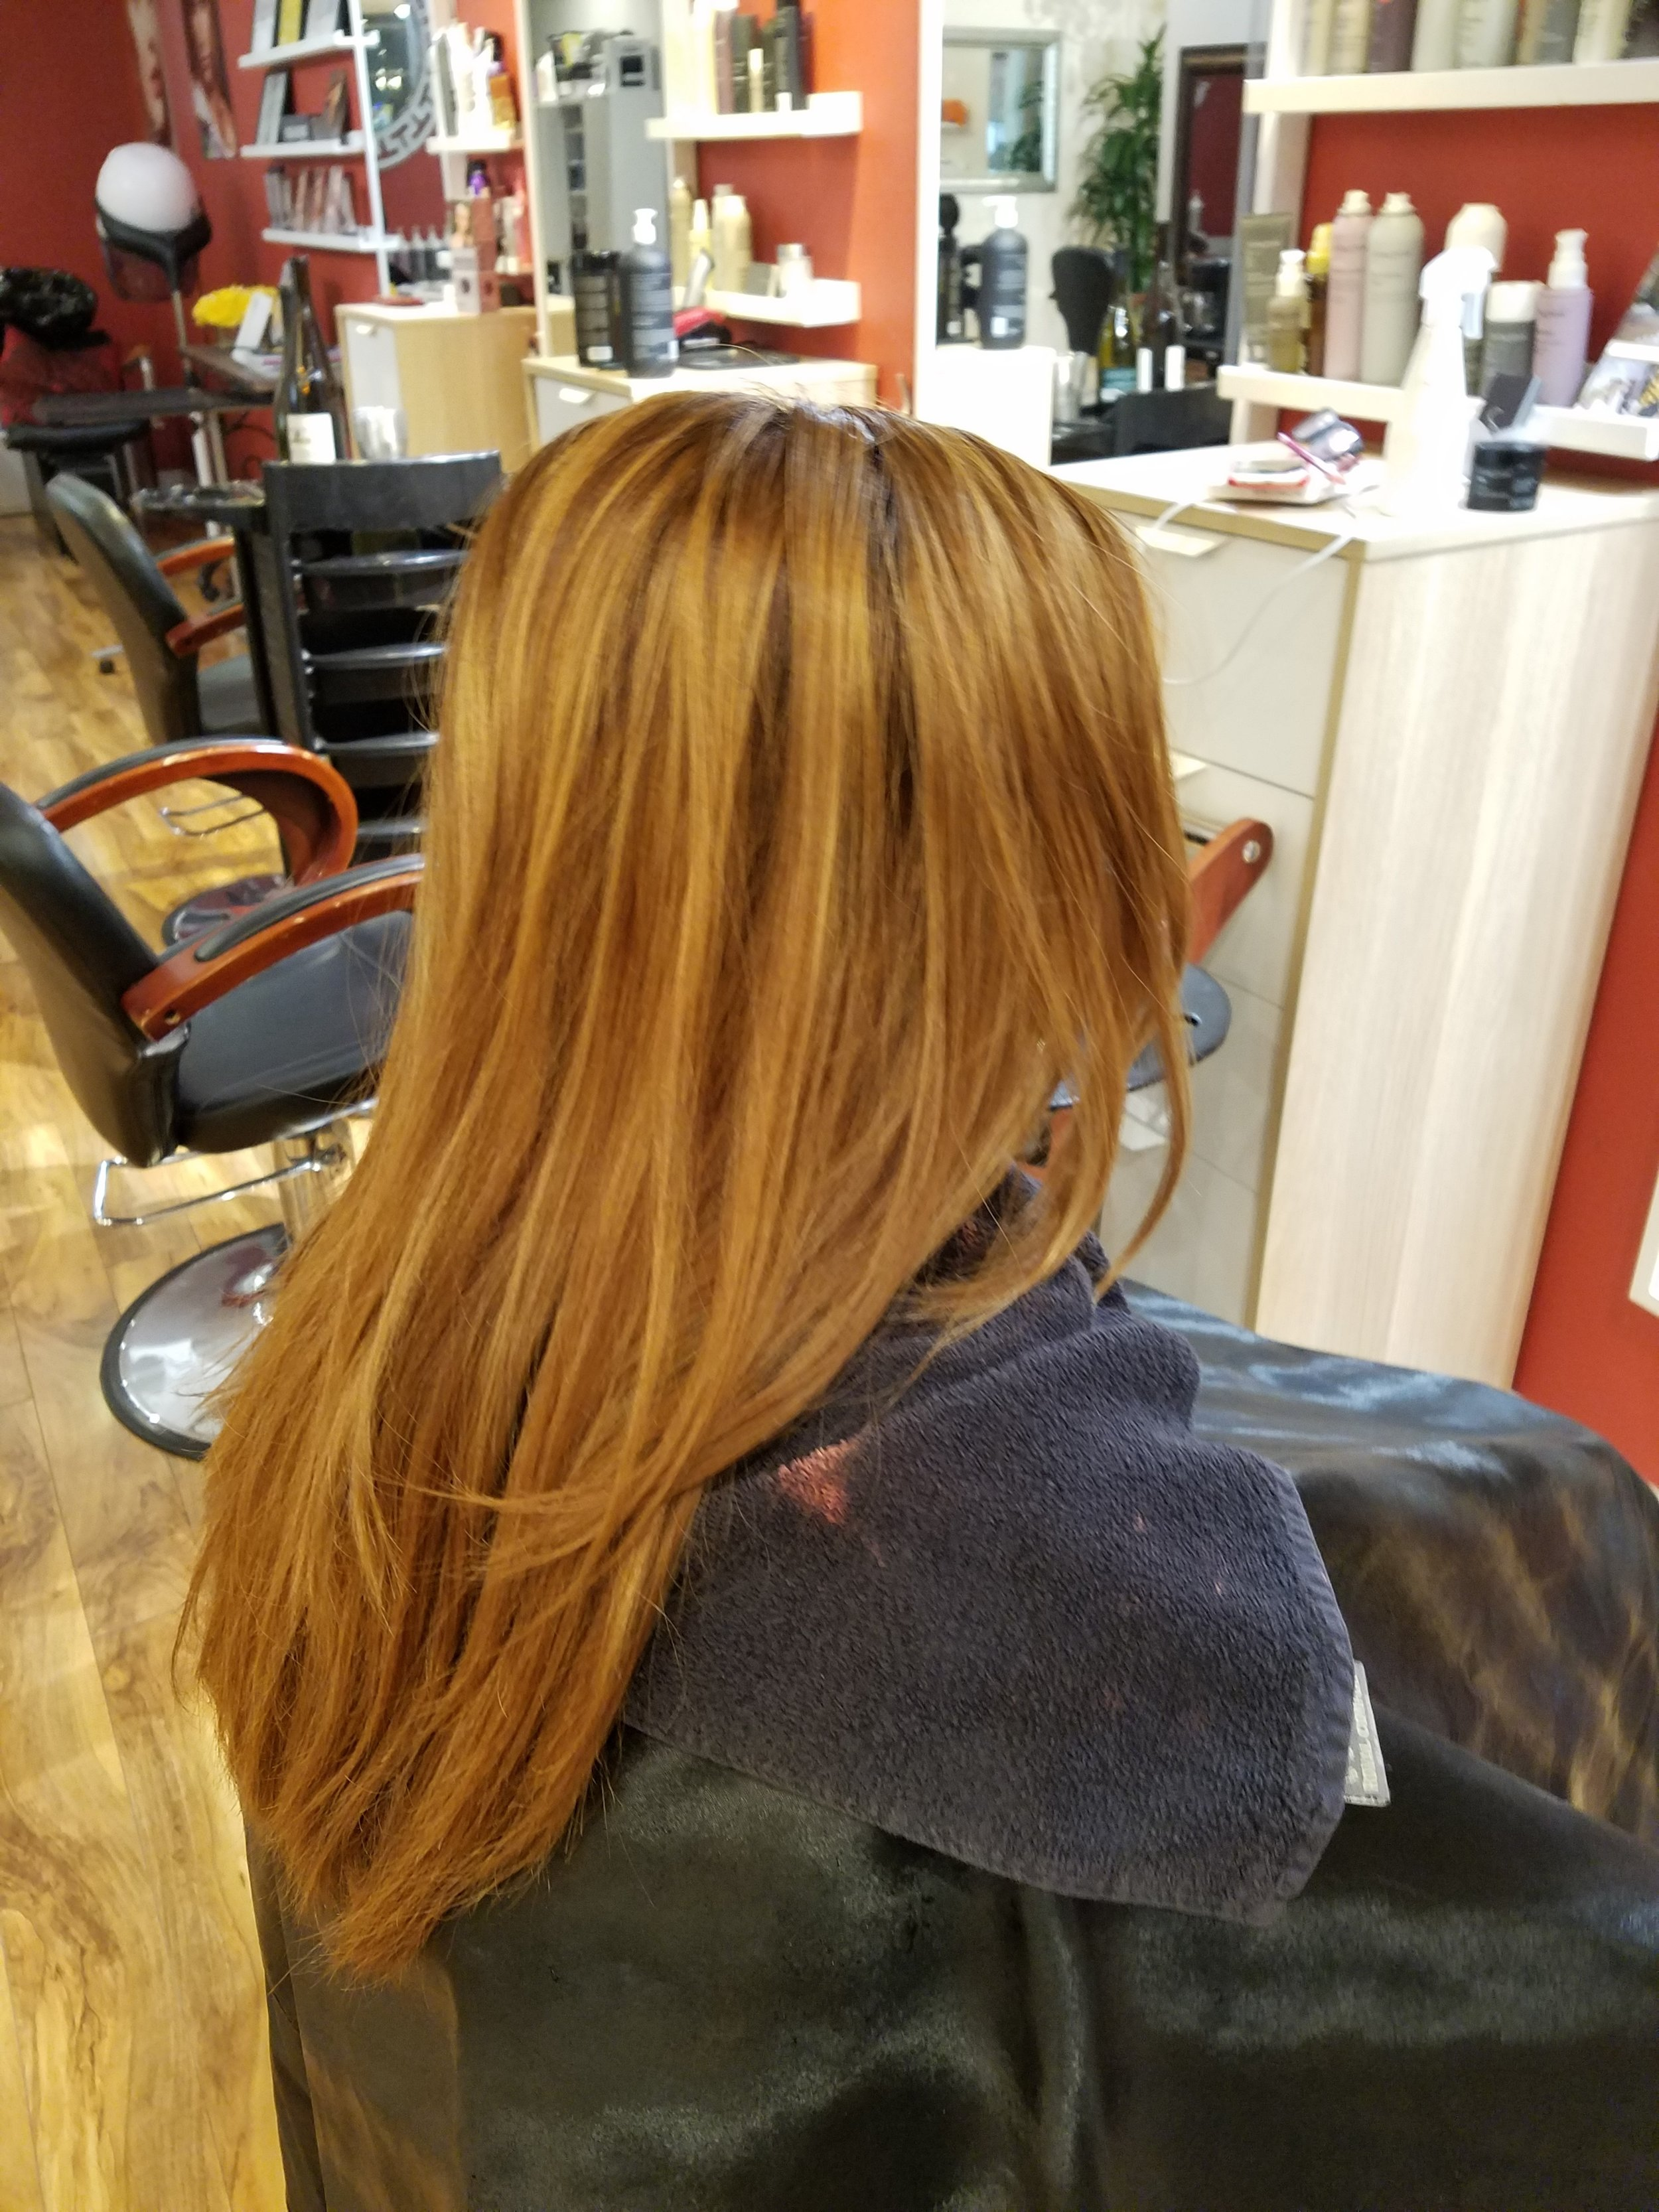 a-hair-cut-and-color-by-victor-of-jira-couture-stylists_30769395850_o.jpg